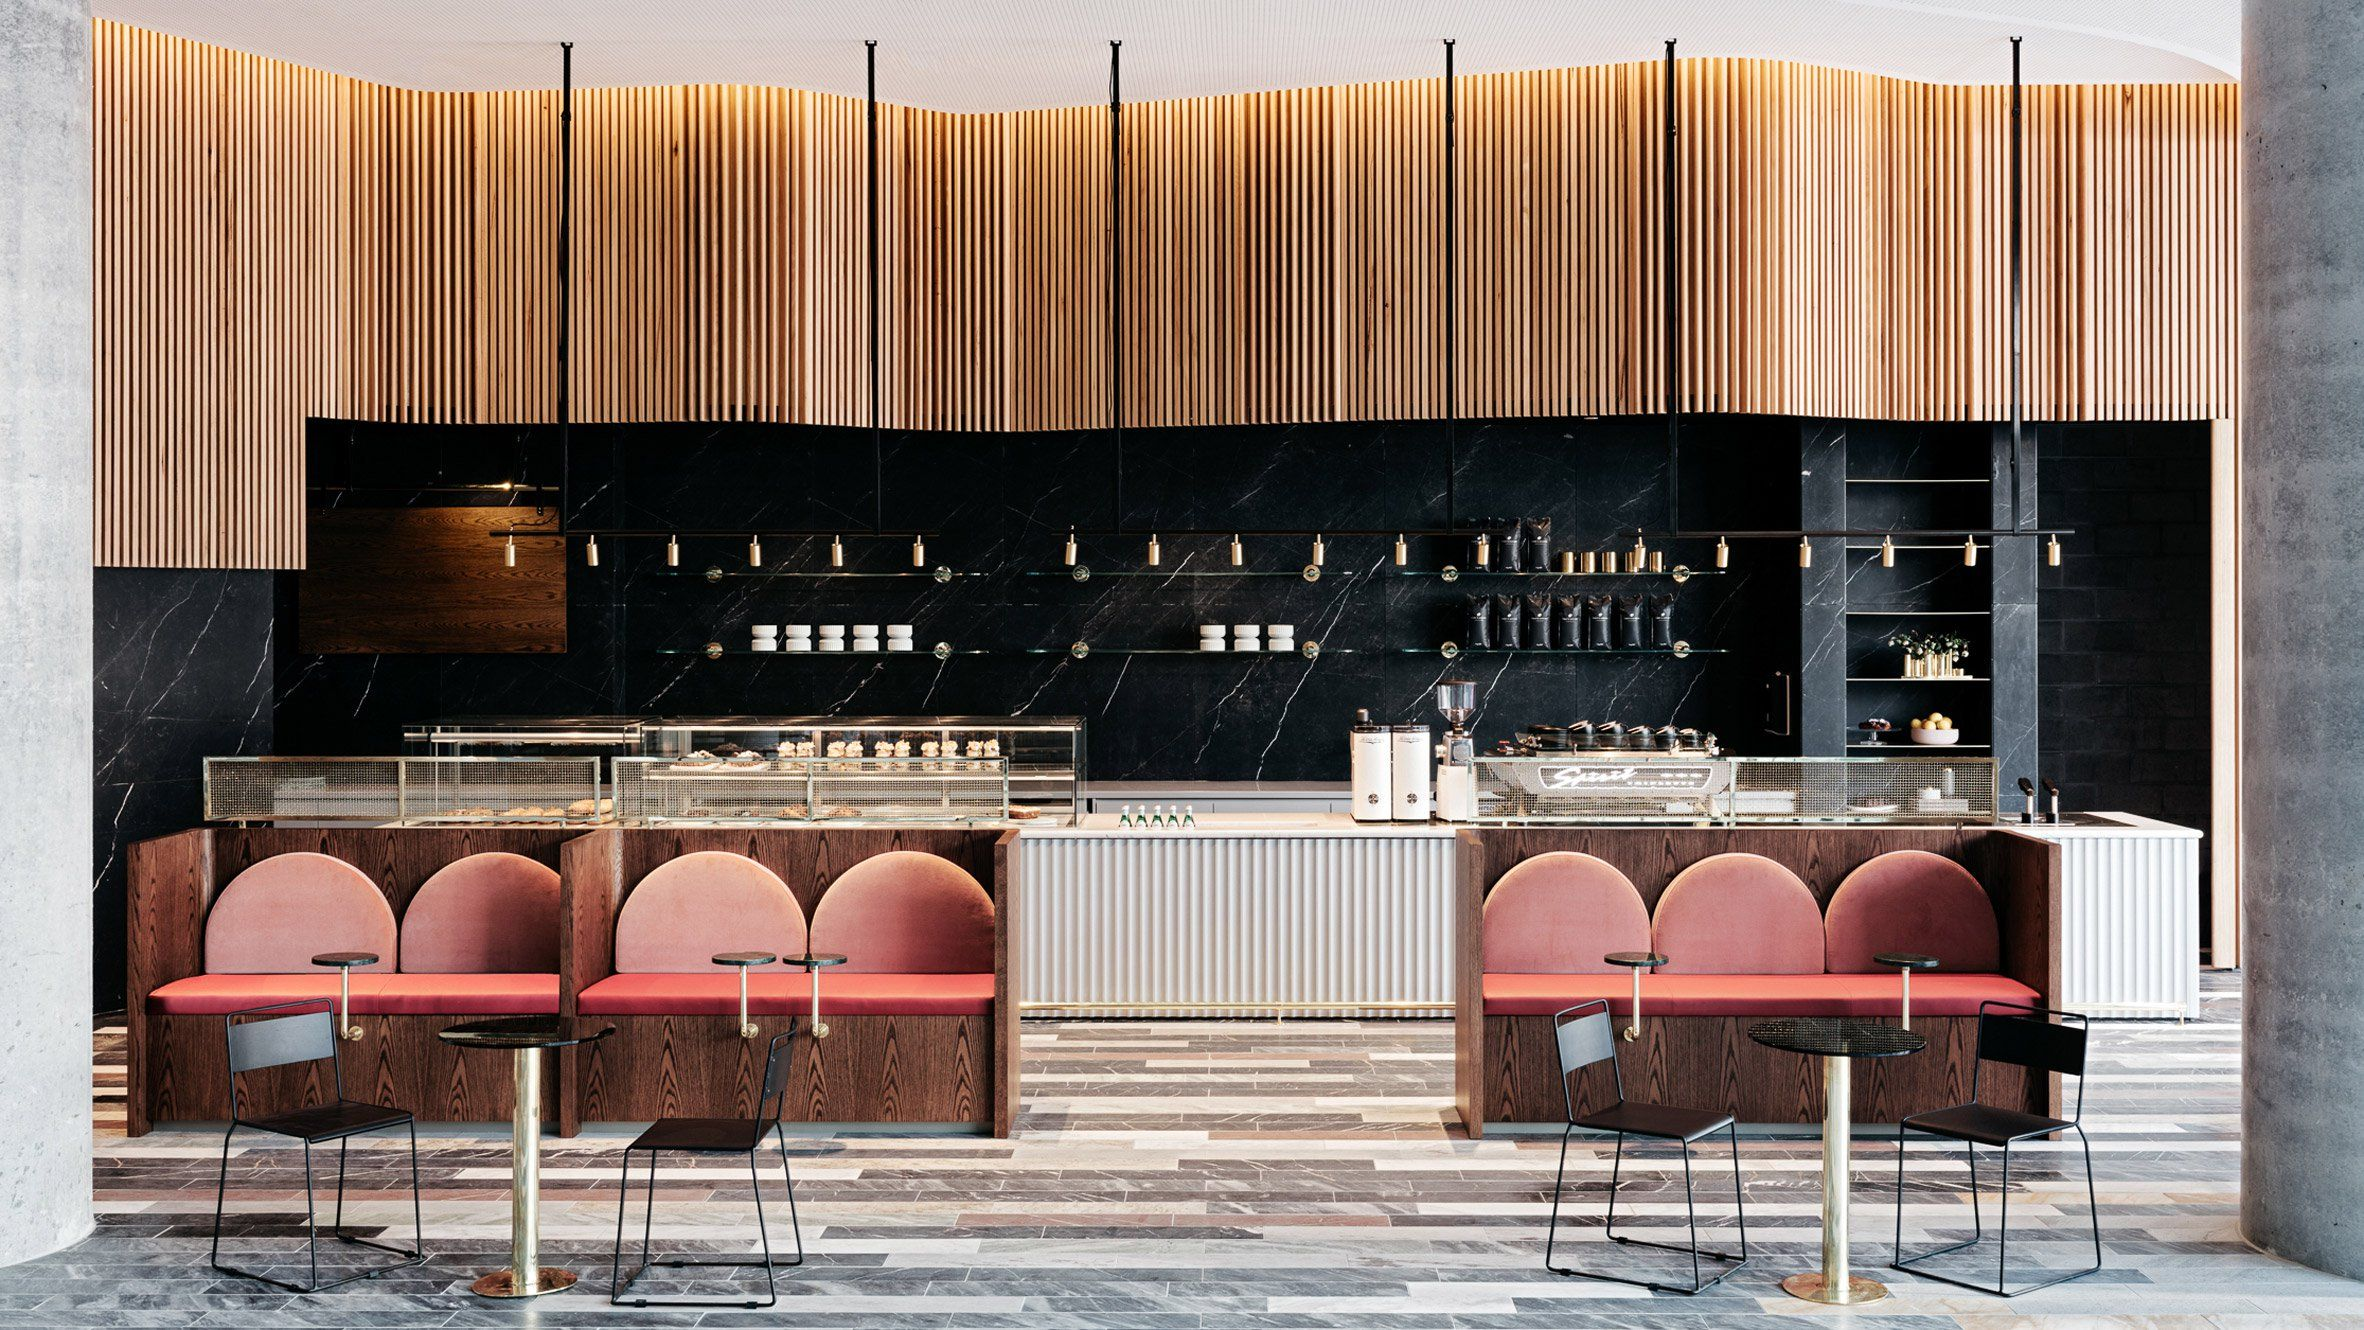 The Restrained Opulence Of Historic Banks And Treasuries Informed The Interior Of This Coffee Shop In Syd Bar Design Restaurant Cafe Design Bar Design Awards